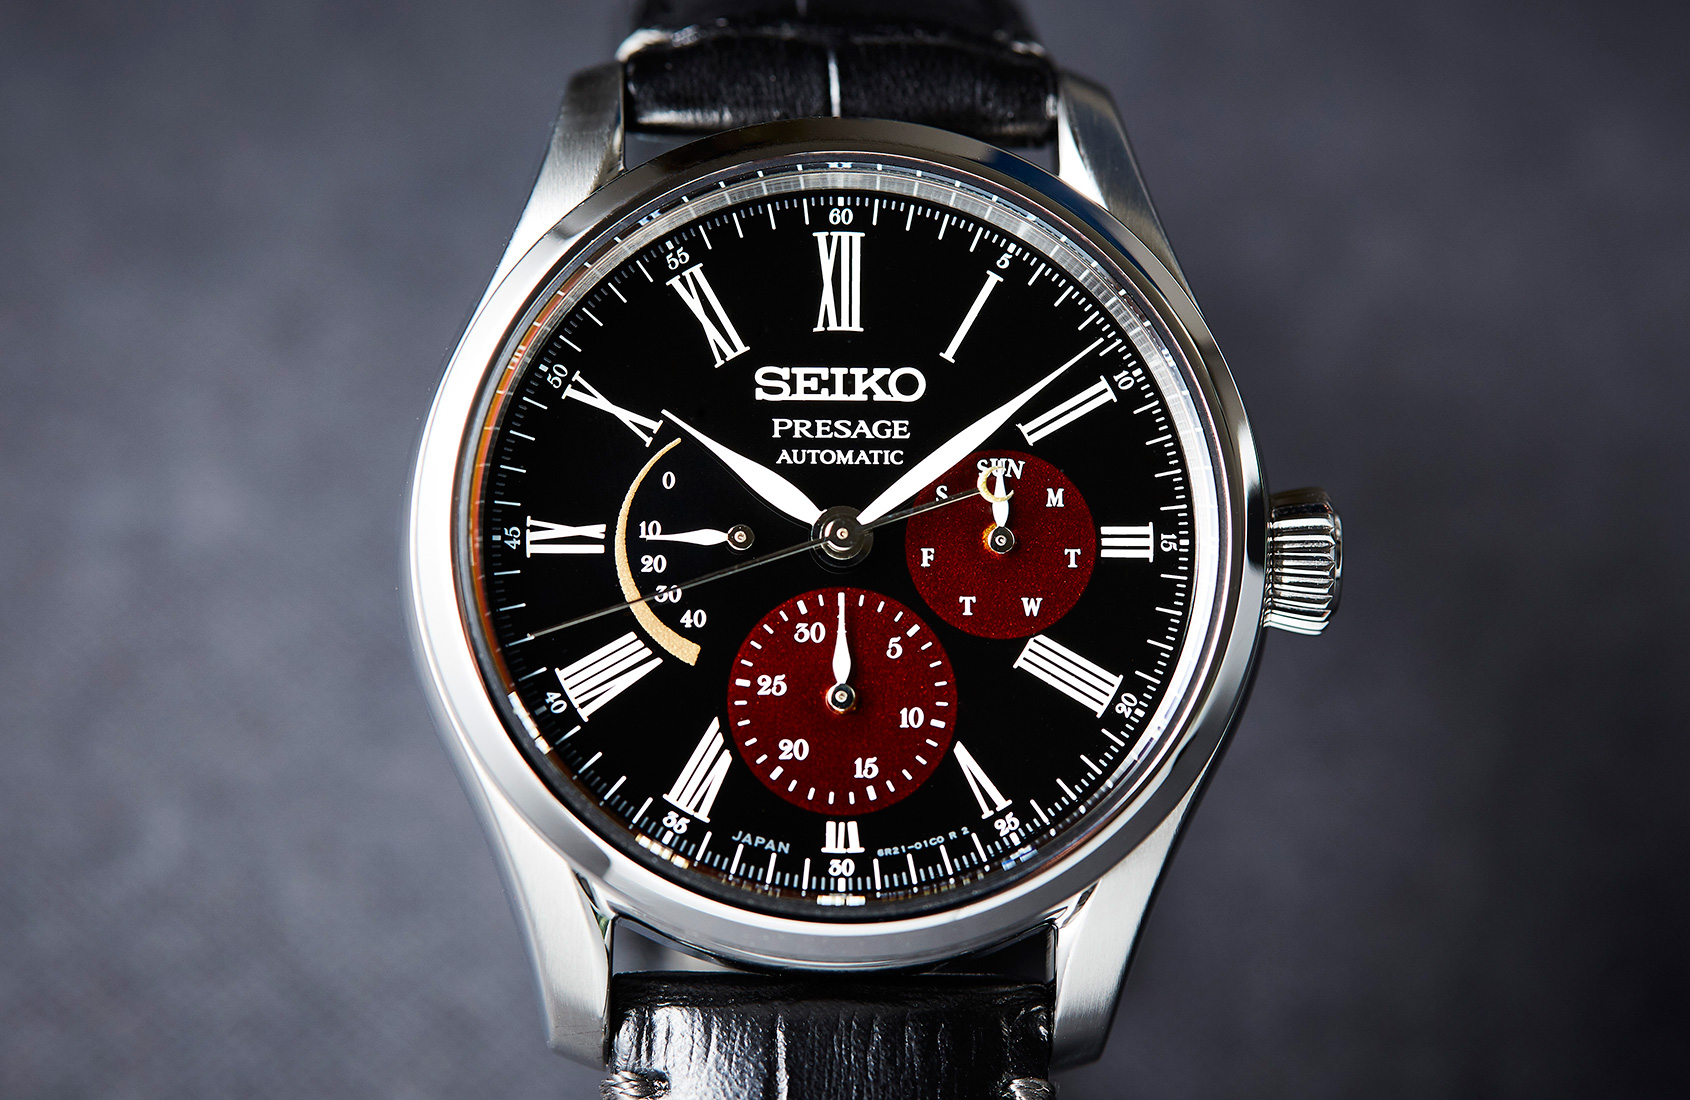 Seiko Stainless Steel Presage 40.5mm Limited  Edition Automatic/ Hand Winding Watch With Urushi Lacquer Black Dial (SPB085)